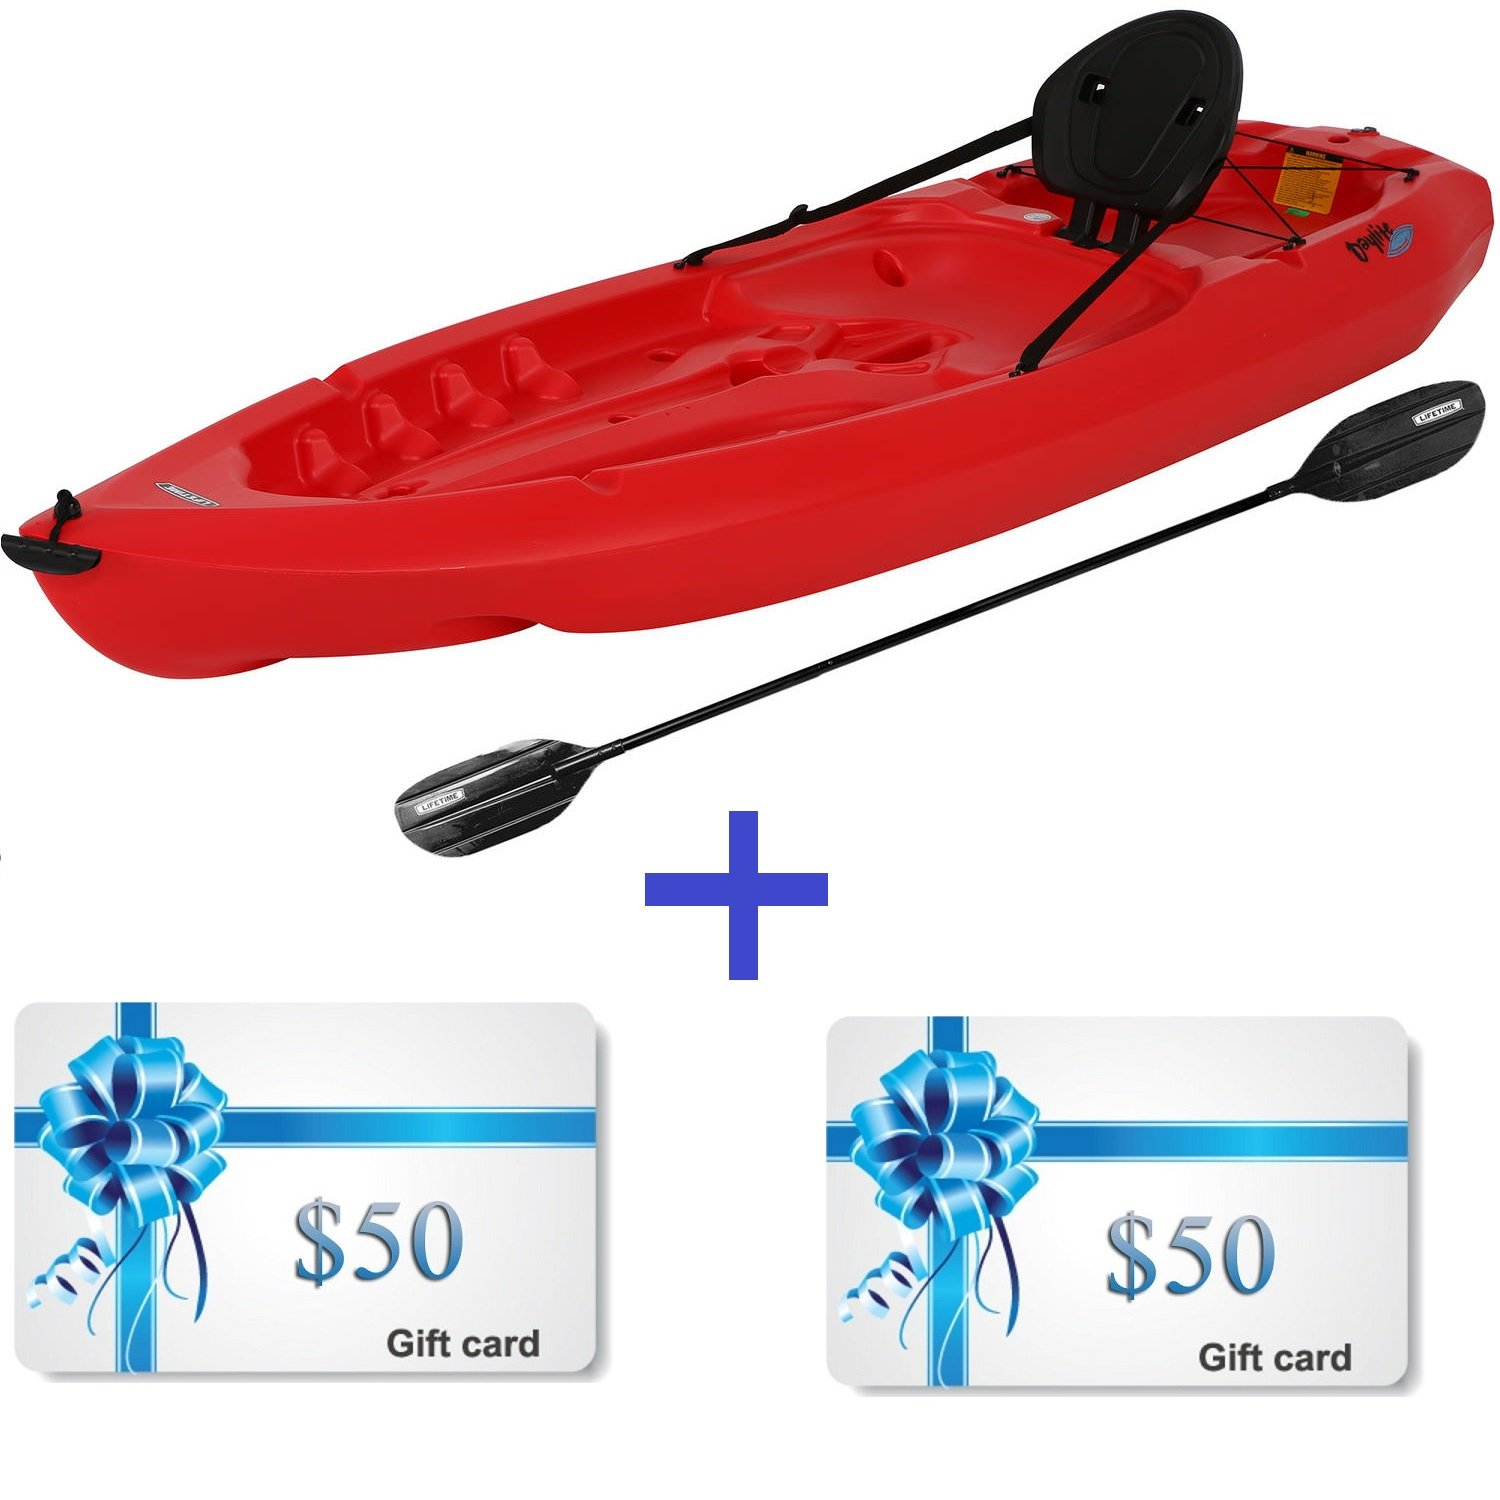 Lightweight Kayak Hard Shell with Paddle for Kids, Large Adult & Dog. Canoe Boat Hardshell 8 Ft Adjustable Seat & Storage Compartment. Recreational 38 Pound to Fishing any Saltwater Ocean River Lake by Lifetime Hard Shell Kayak (Image #1)